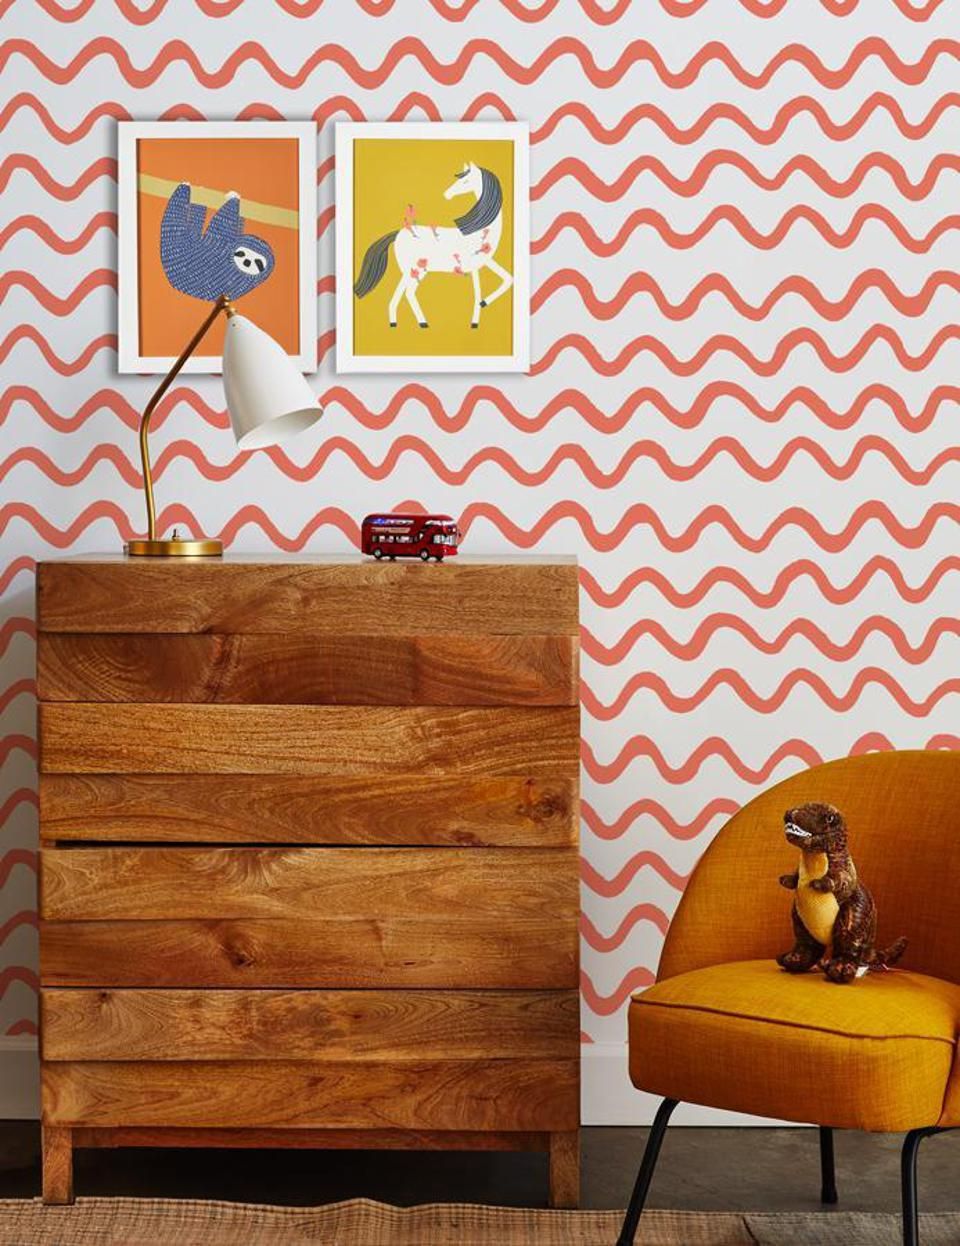 sloth and pony art prints on wall with orange squiggly line wallpaper in kids room